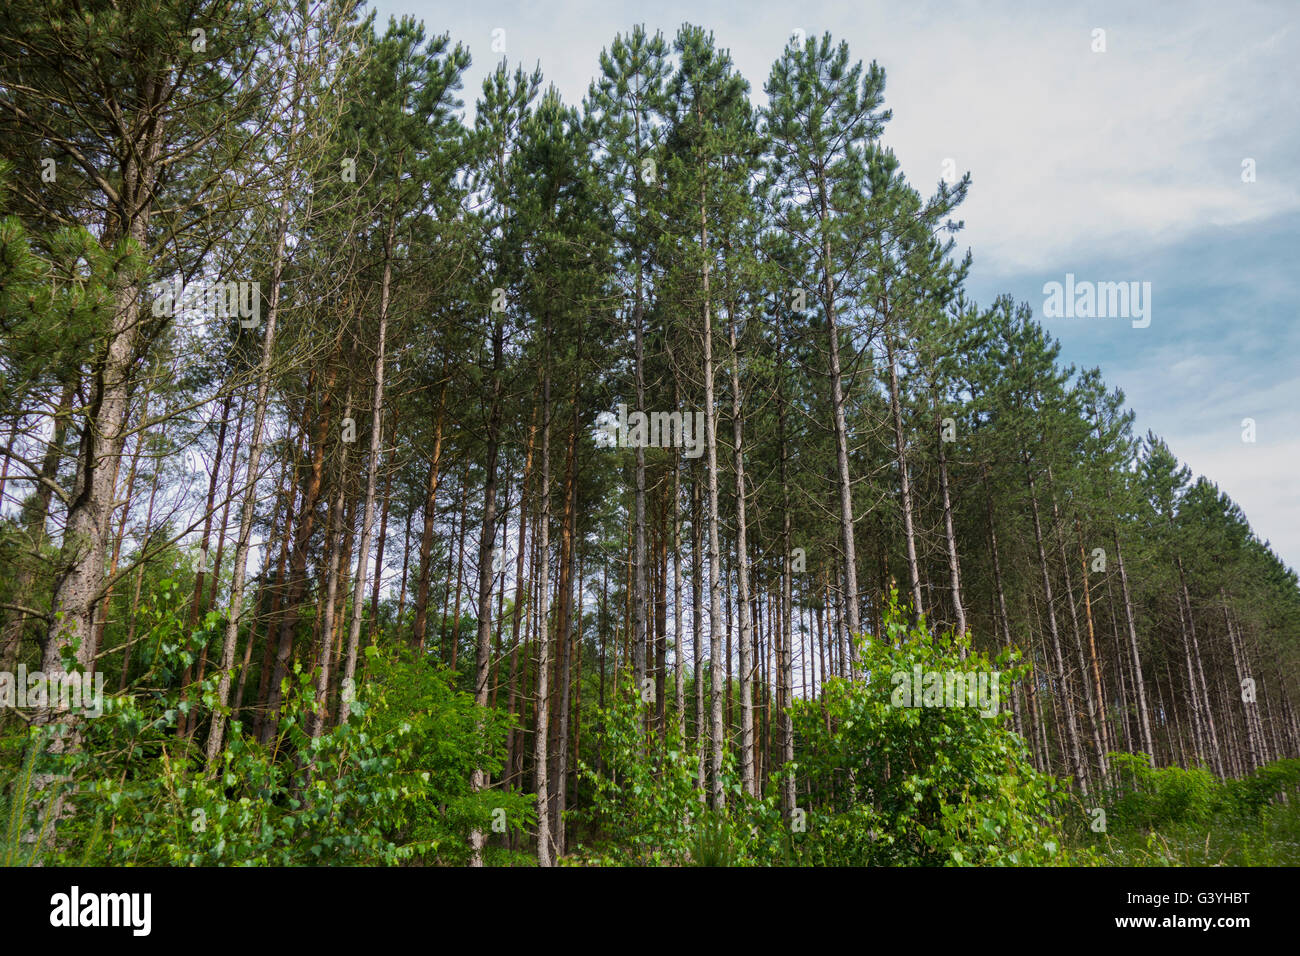 Common spruce, Picea abies, forest in Germany. - Stock Image